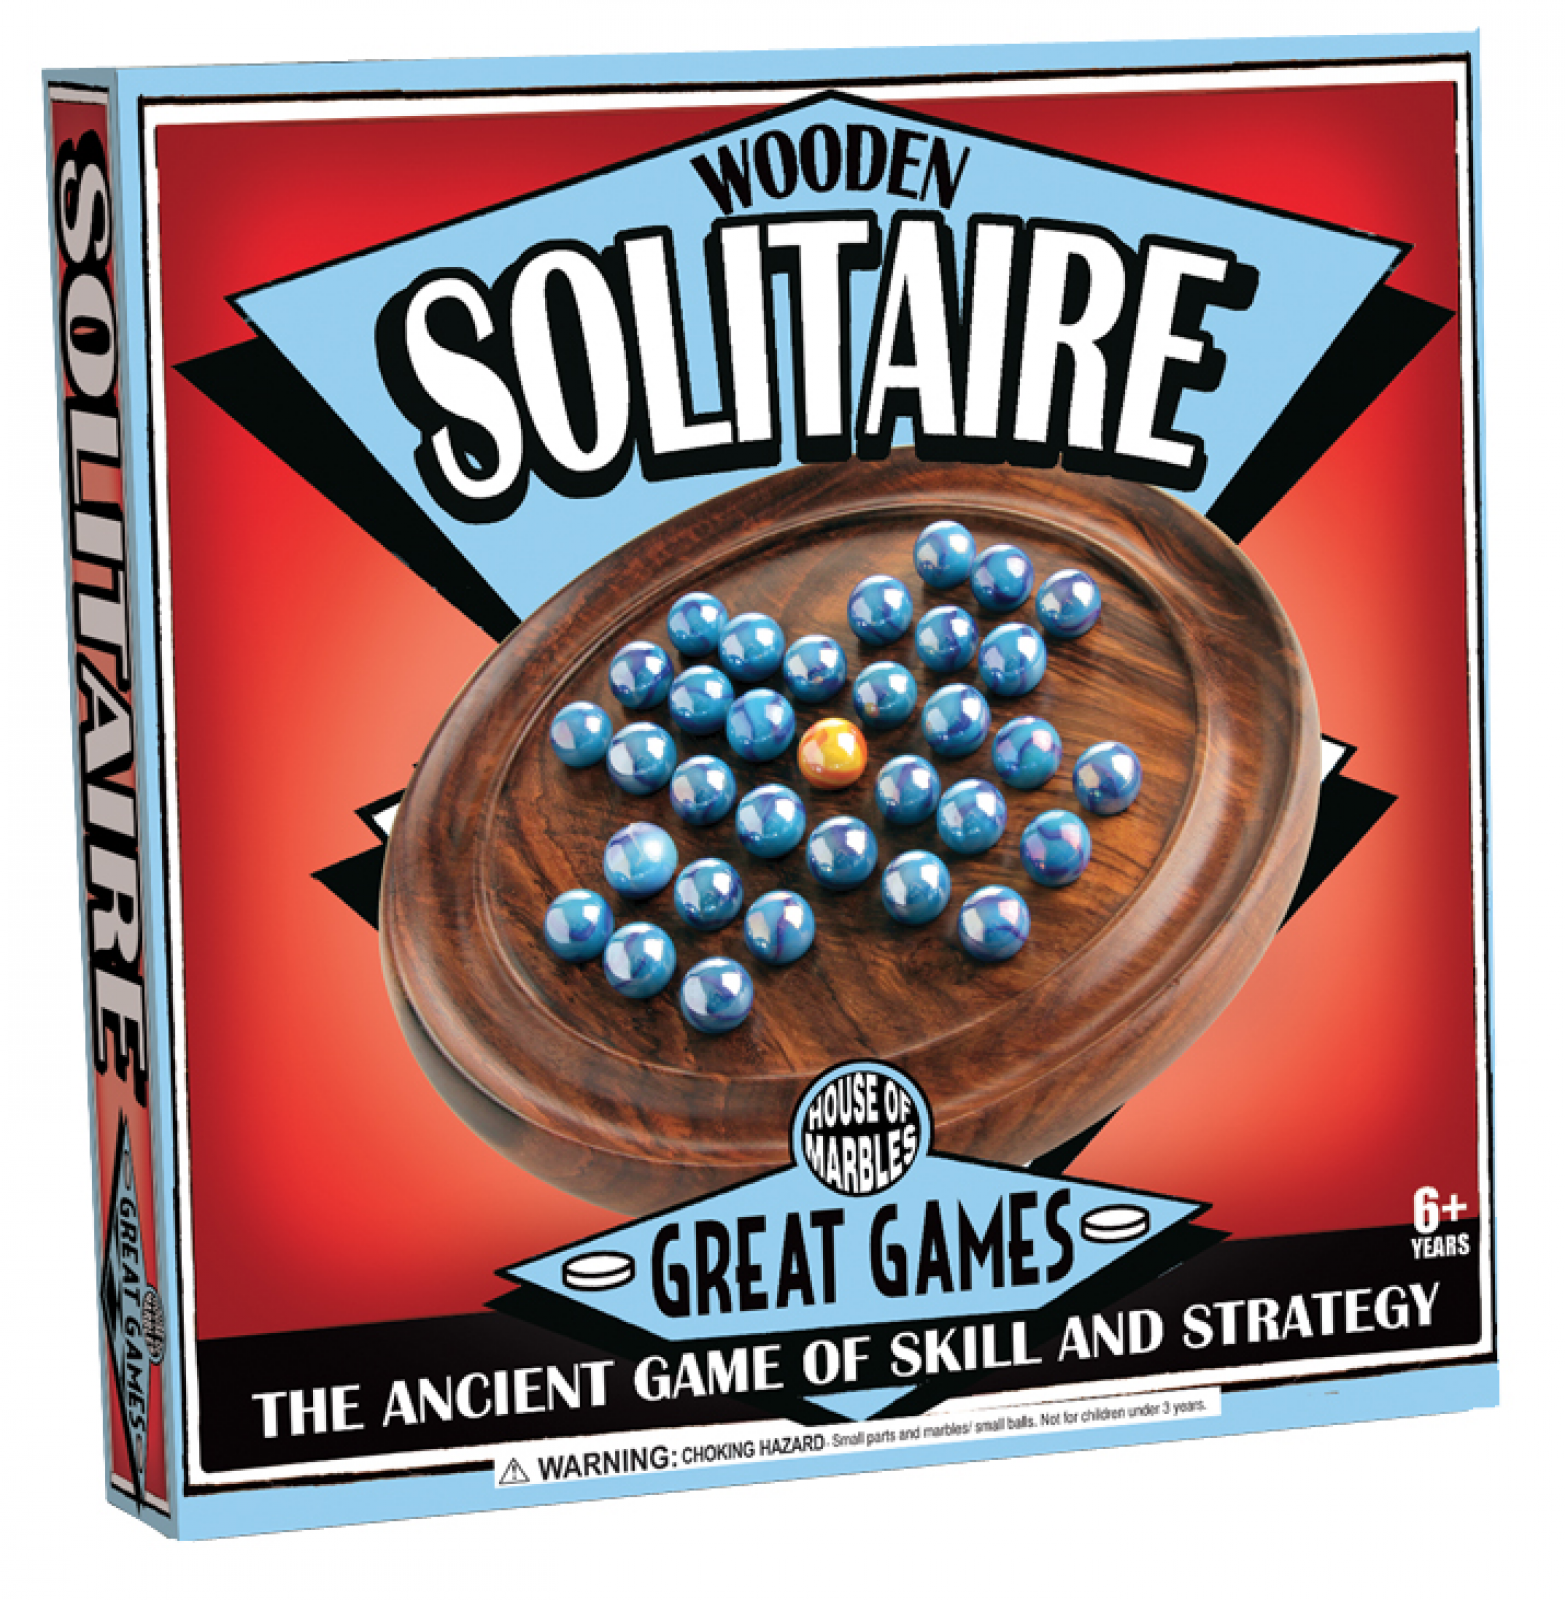 Solitaire Wooden Game With Marbles thumbnails